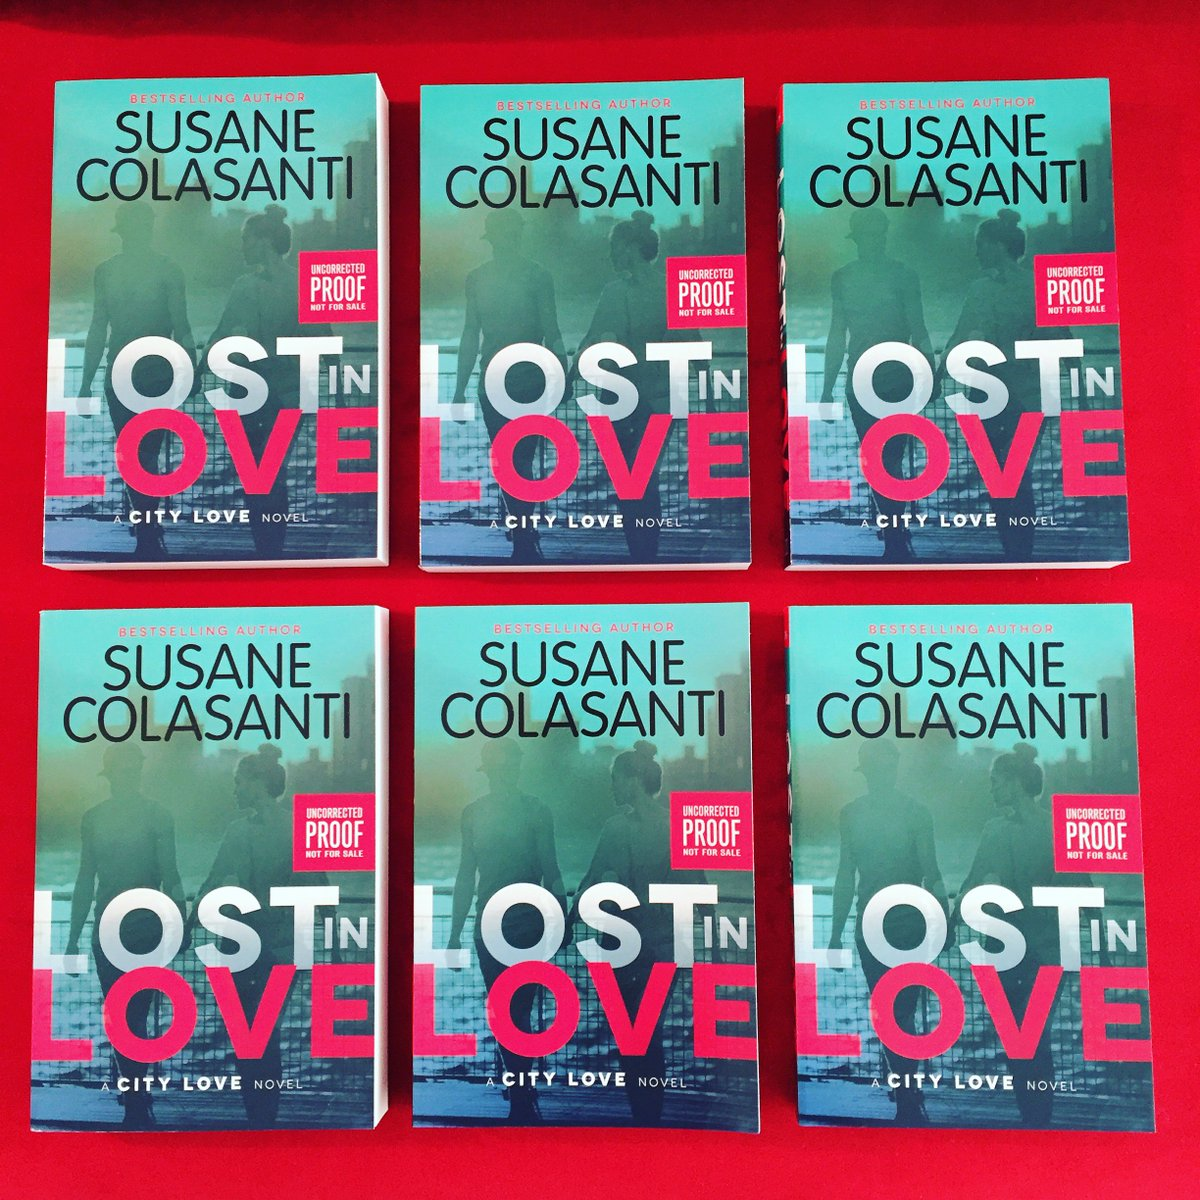 Win a LOST IN LOVE advance copy! To enter the giveaway, follow me and RT. Ends 2.05 at 10pm EST. US only. https://t.co/9ByLwcg1vR